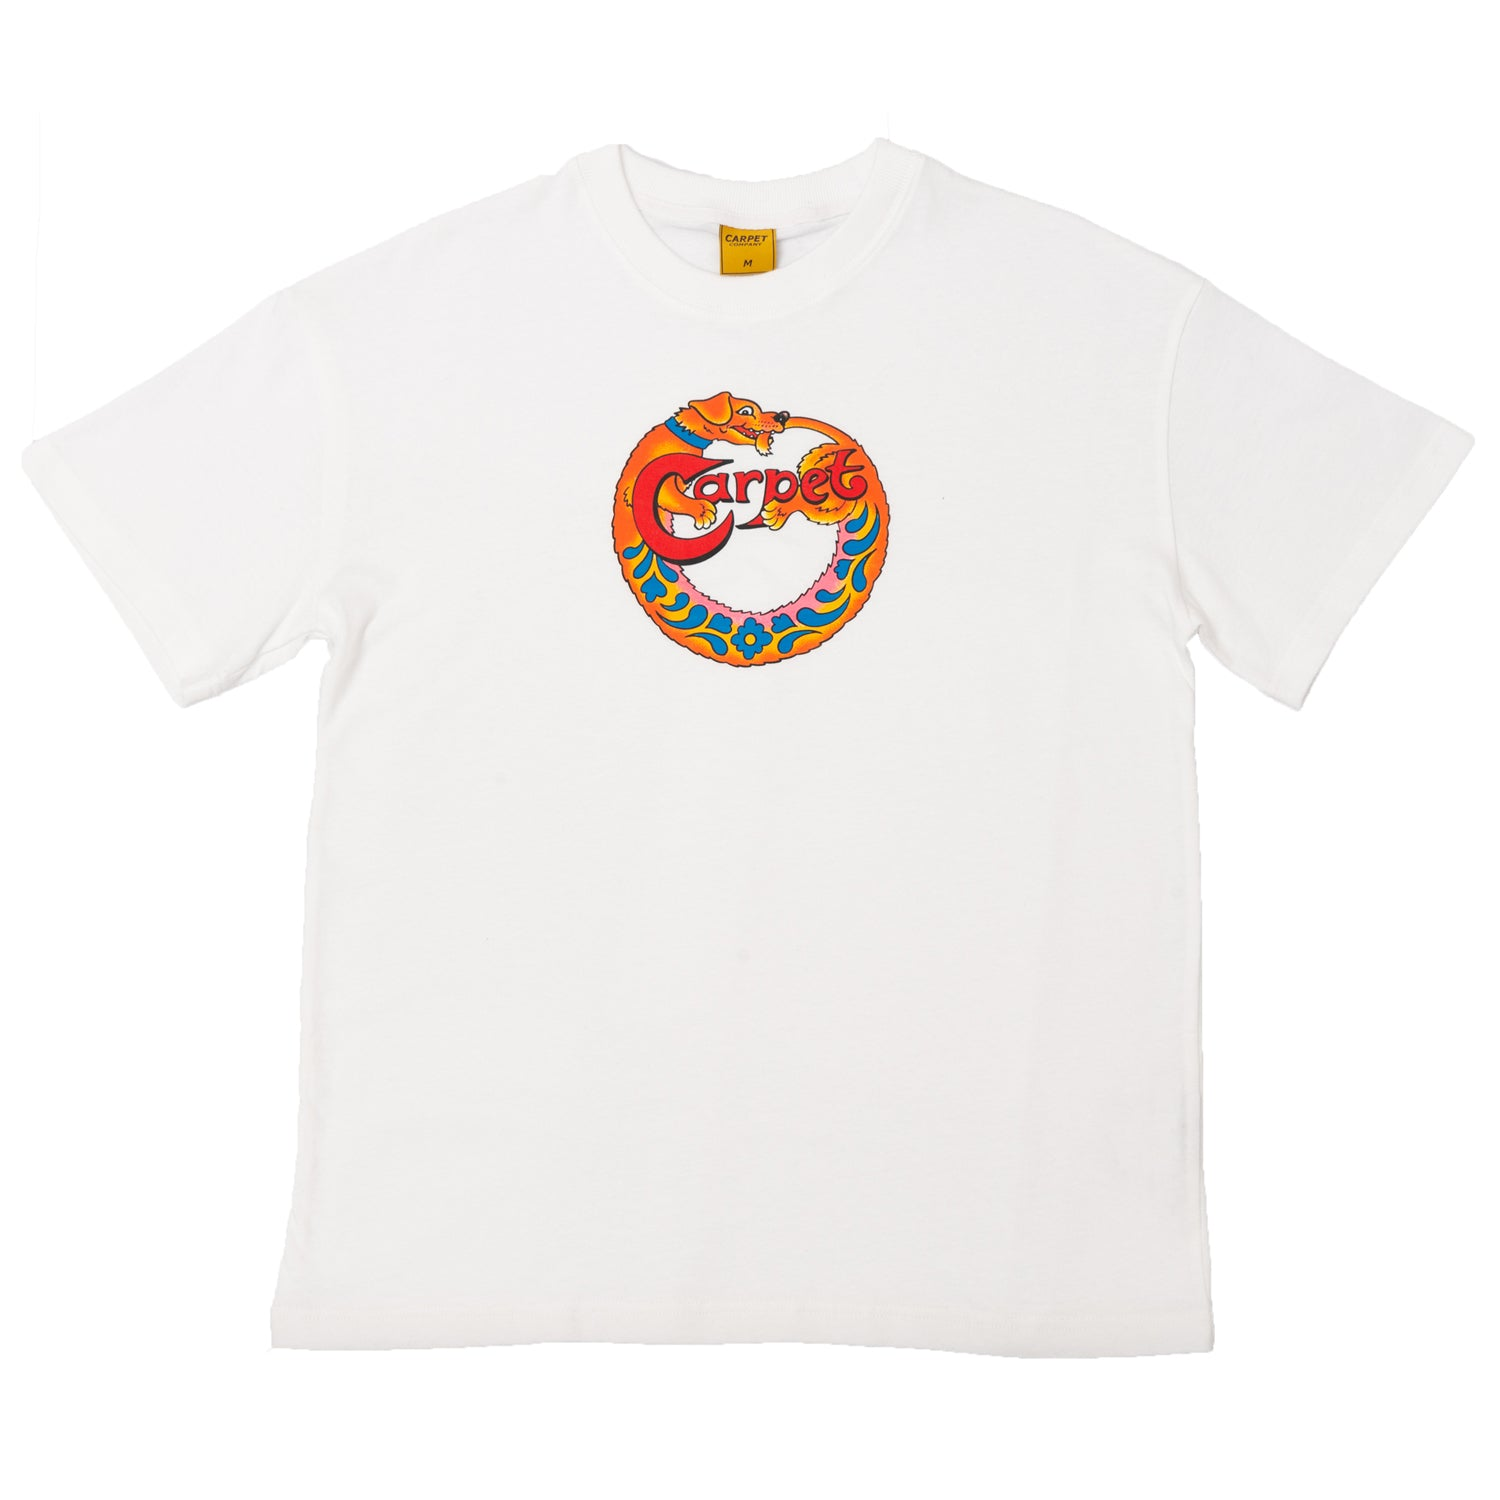 Carpet Company Dog Tee White